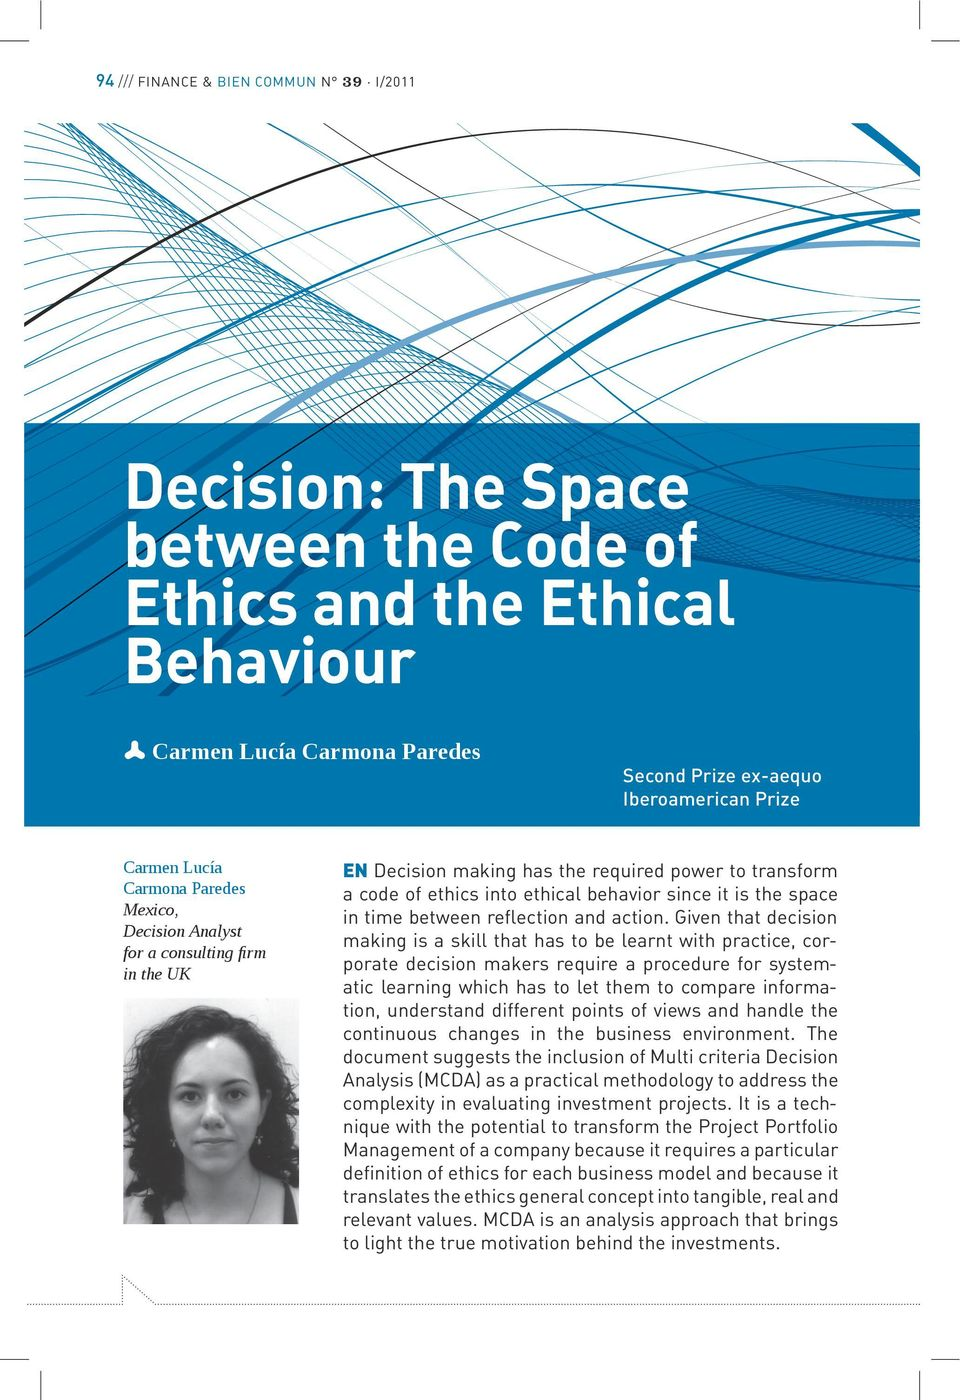 rm in the UK EN Decision making has the required power to transform a code of ethics into ethical behavior since it is the space in time between reflection and action.